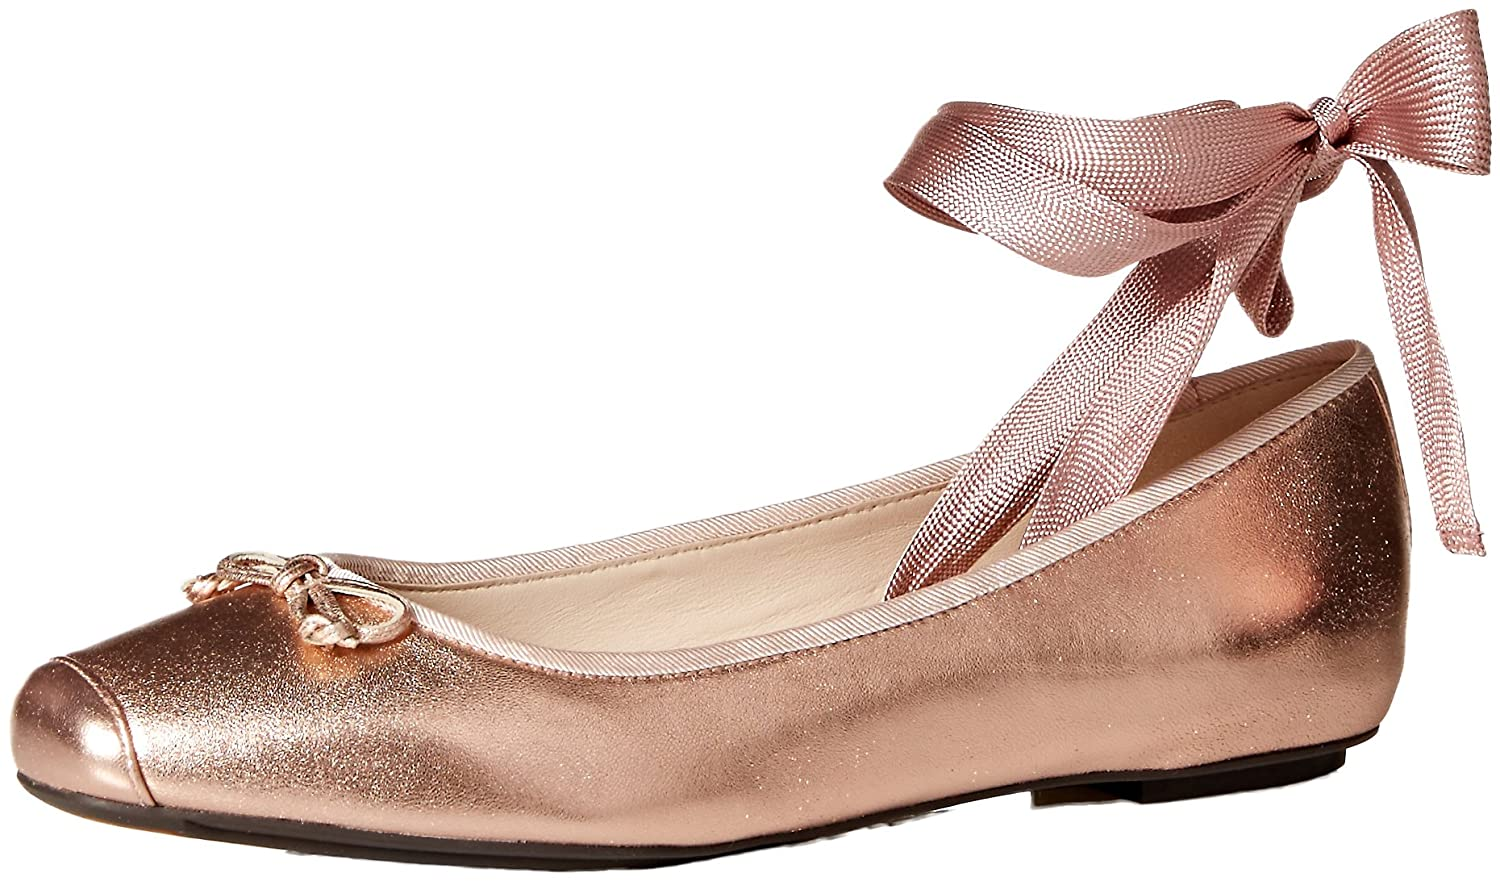 Cole Haan Women's Downtown Ballet Flat B073SPSH9L 7.5 B(M) US|Rose Gold